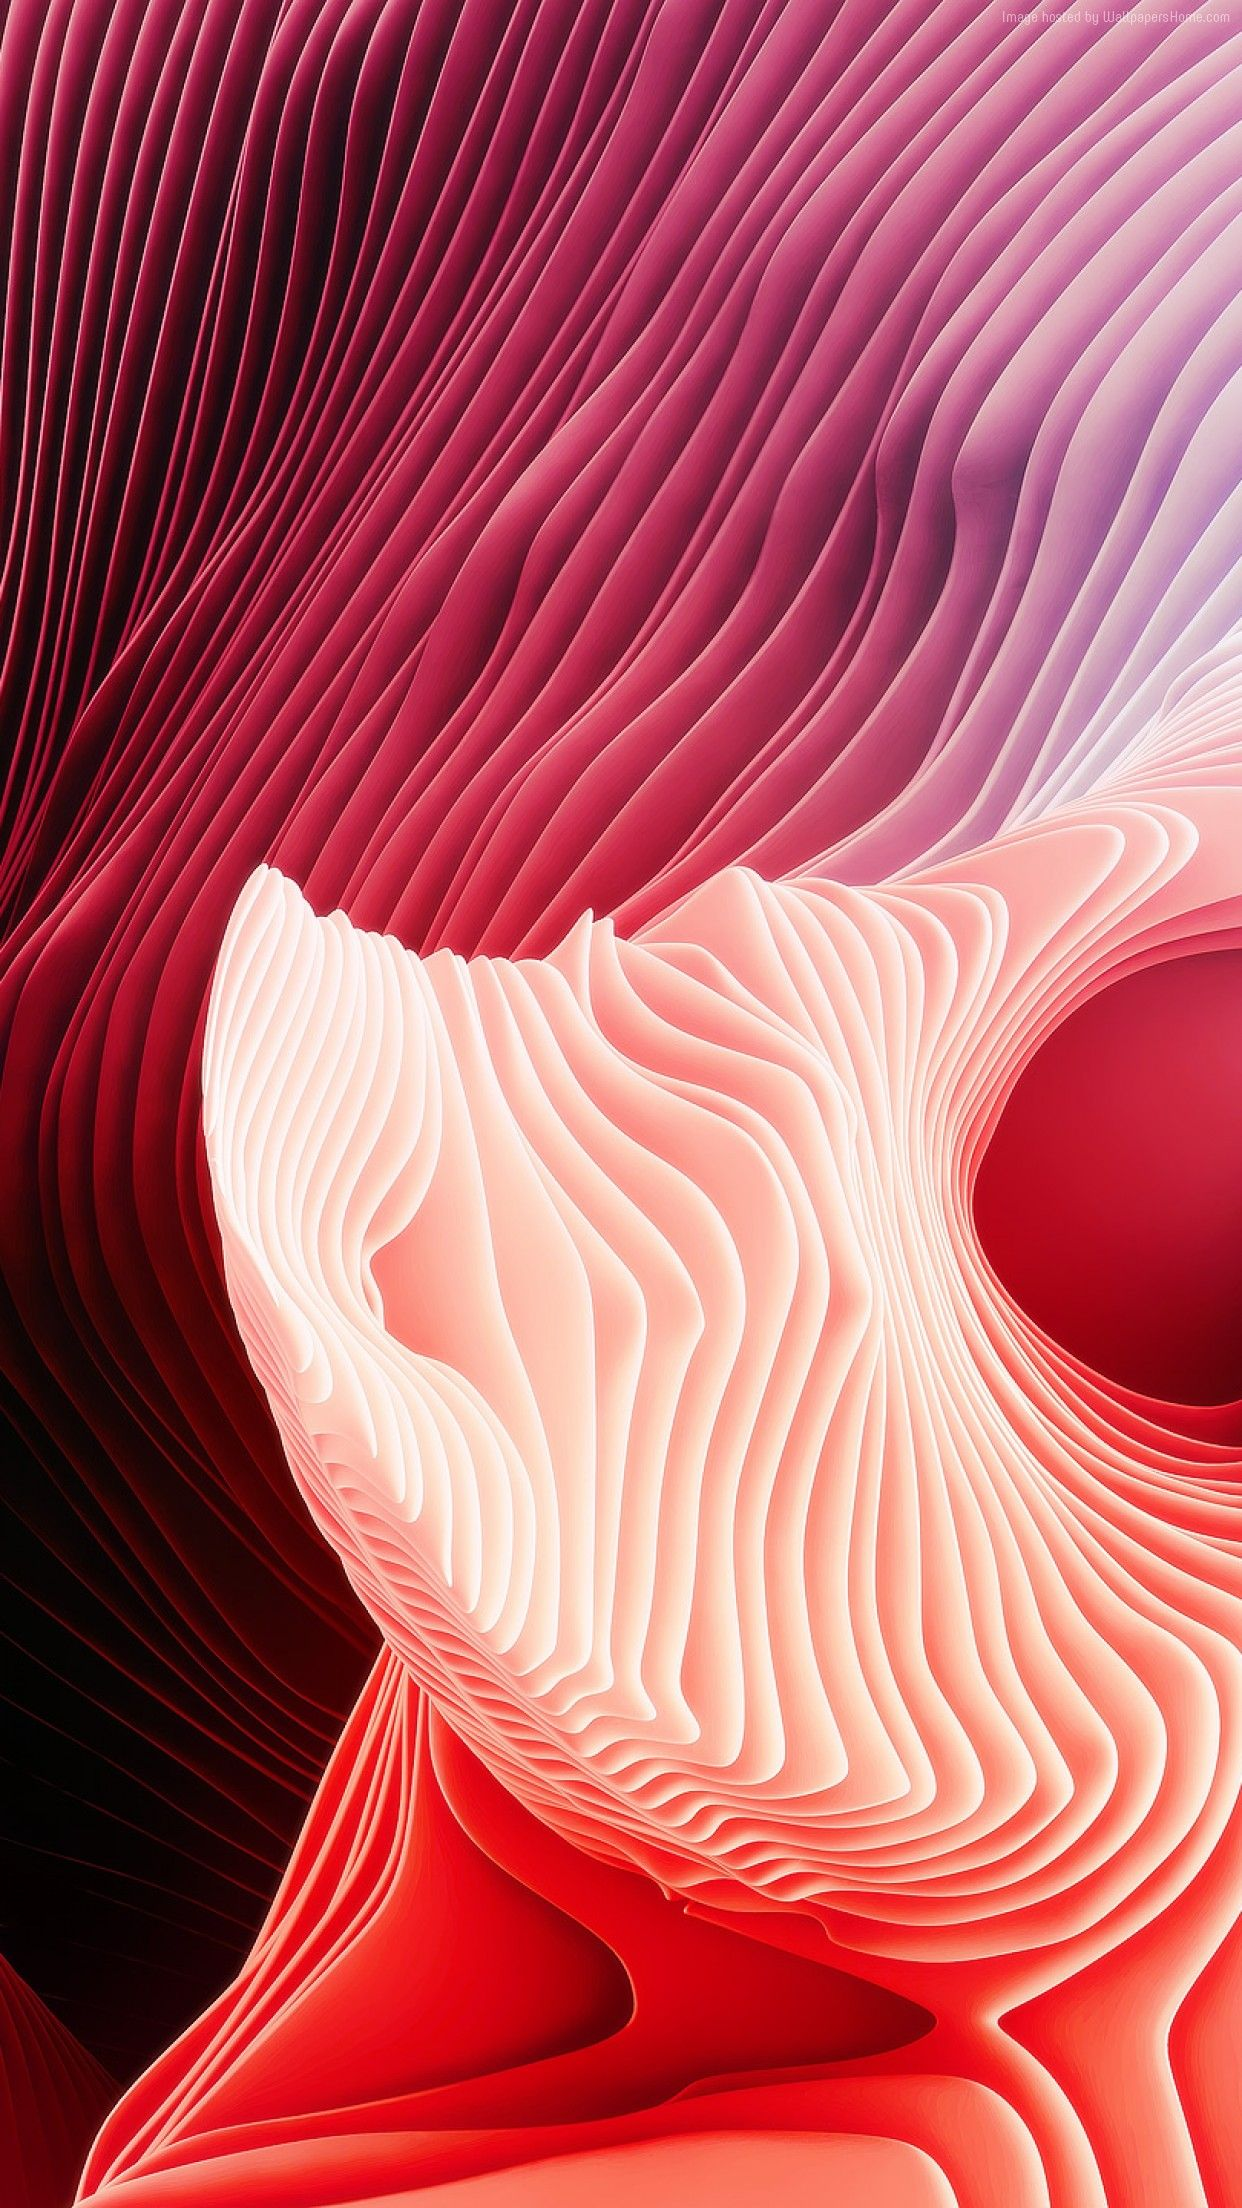 Red Abstract Apple Wallpaper Iphone Clean Beauty Colour